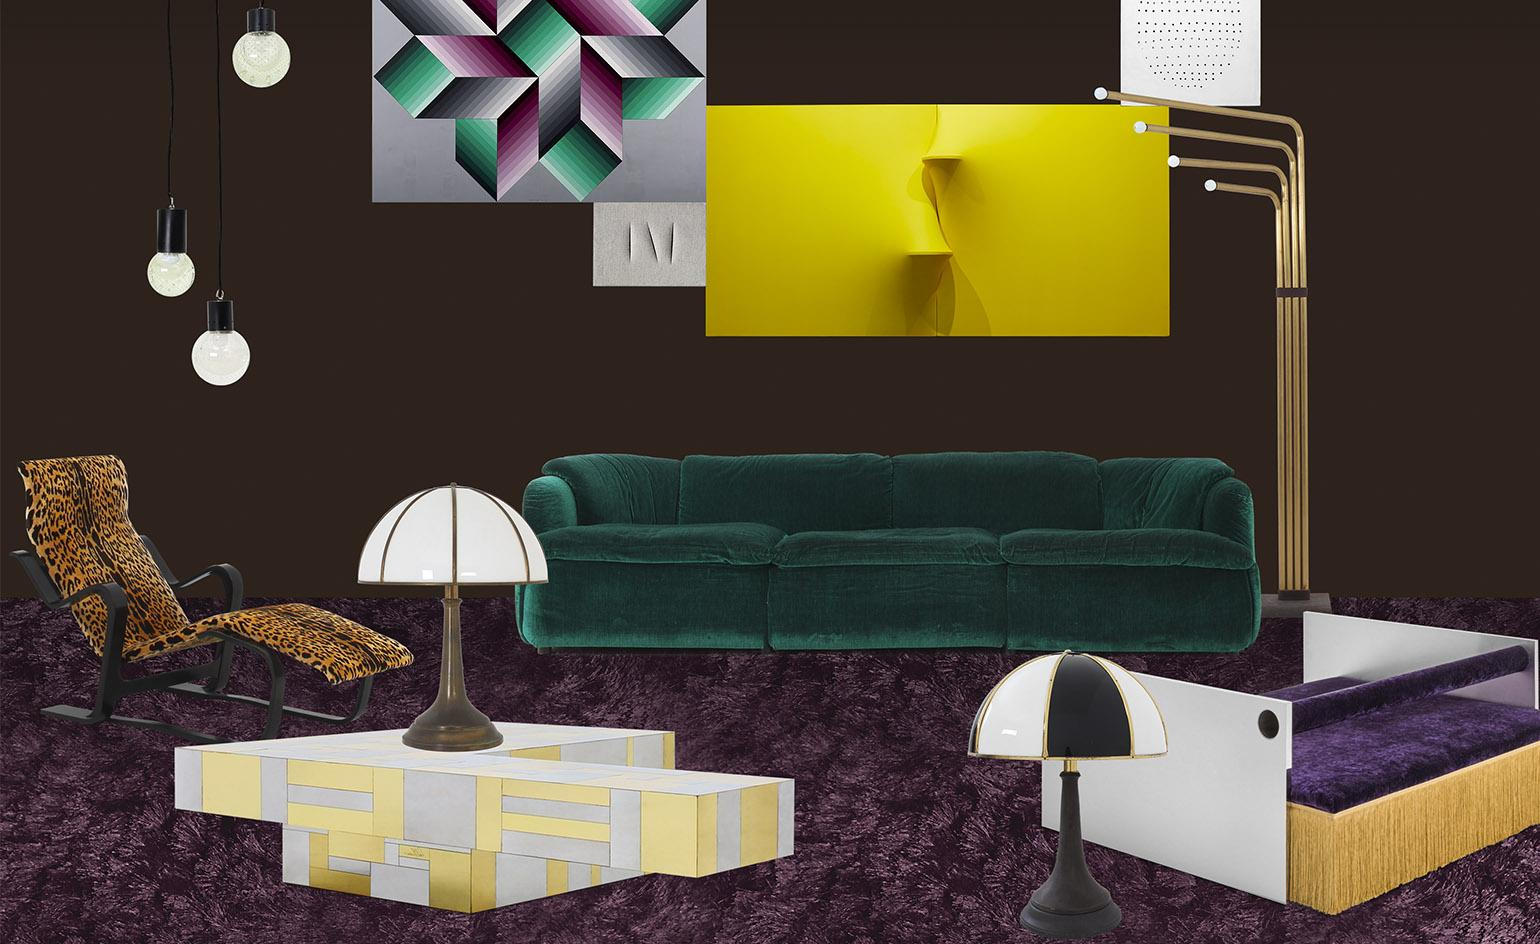 DImore Studio scenic mock up for a living room. Height is added to the arrangement with the brass lamp on the right of the sofa, which ties in with brass highlights on the coffee table, lower left. Curved brass floor lamps can be used to 'frame' the furniture arrangement, reflecting other shapes or contrasting with them and defining edges. Image courtesy alterazioniviniliche.blogspot.com